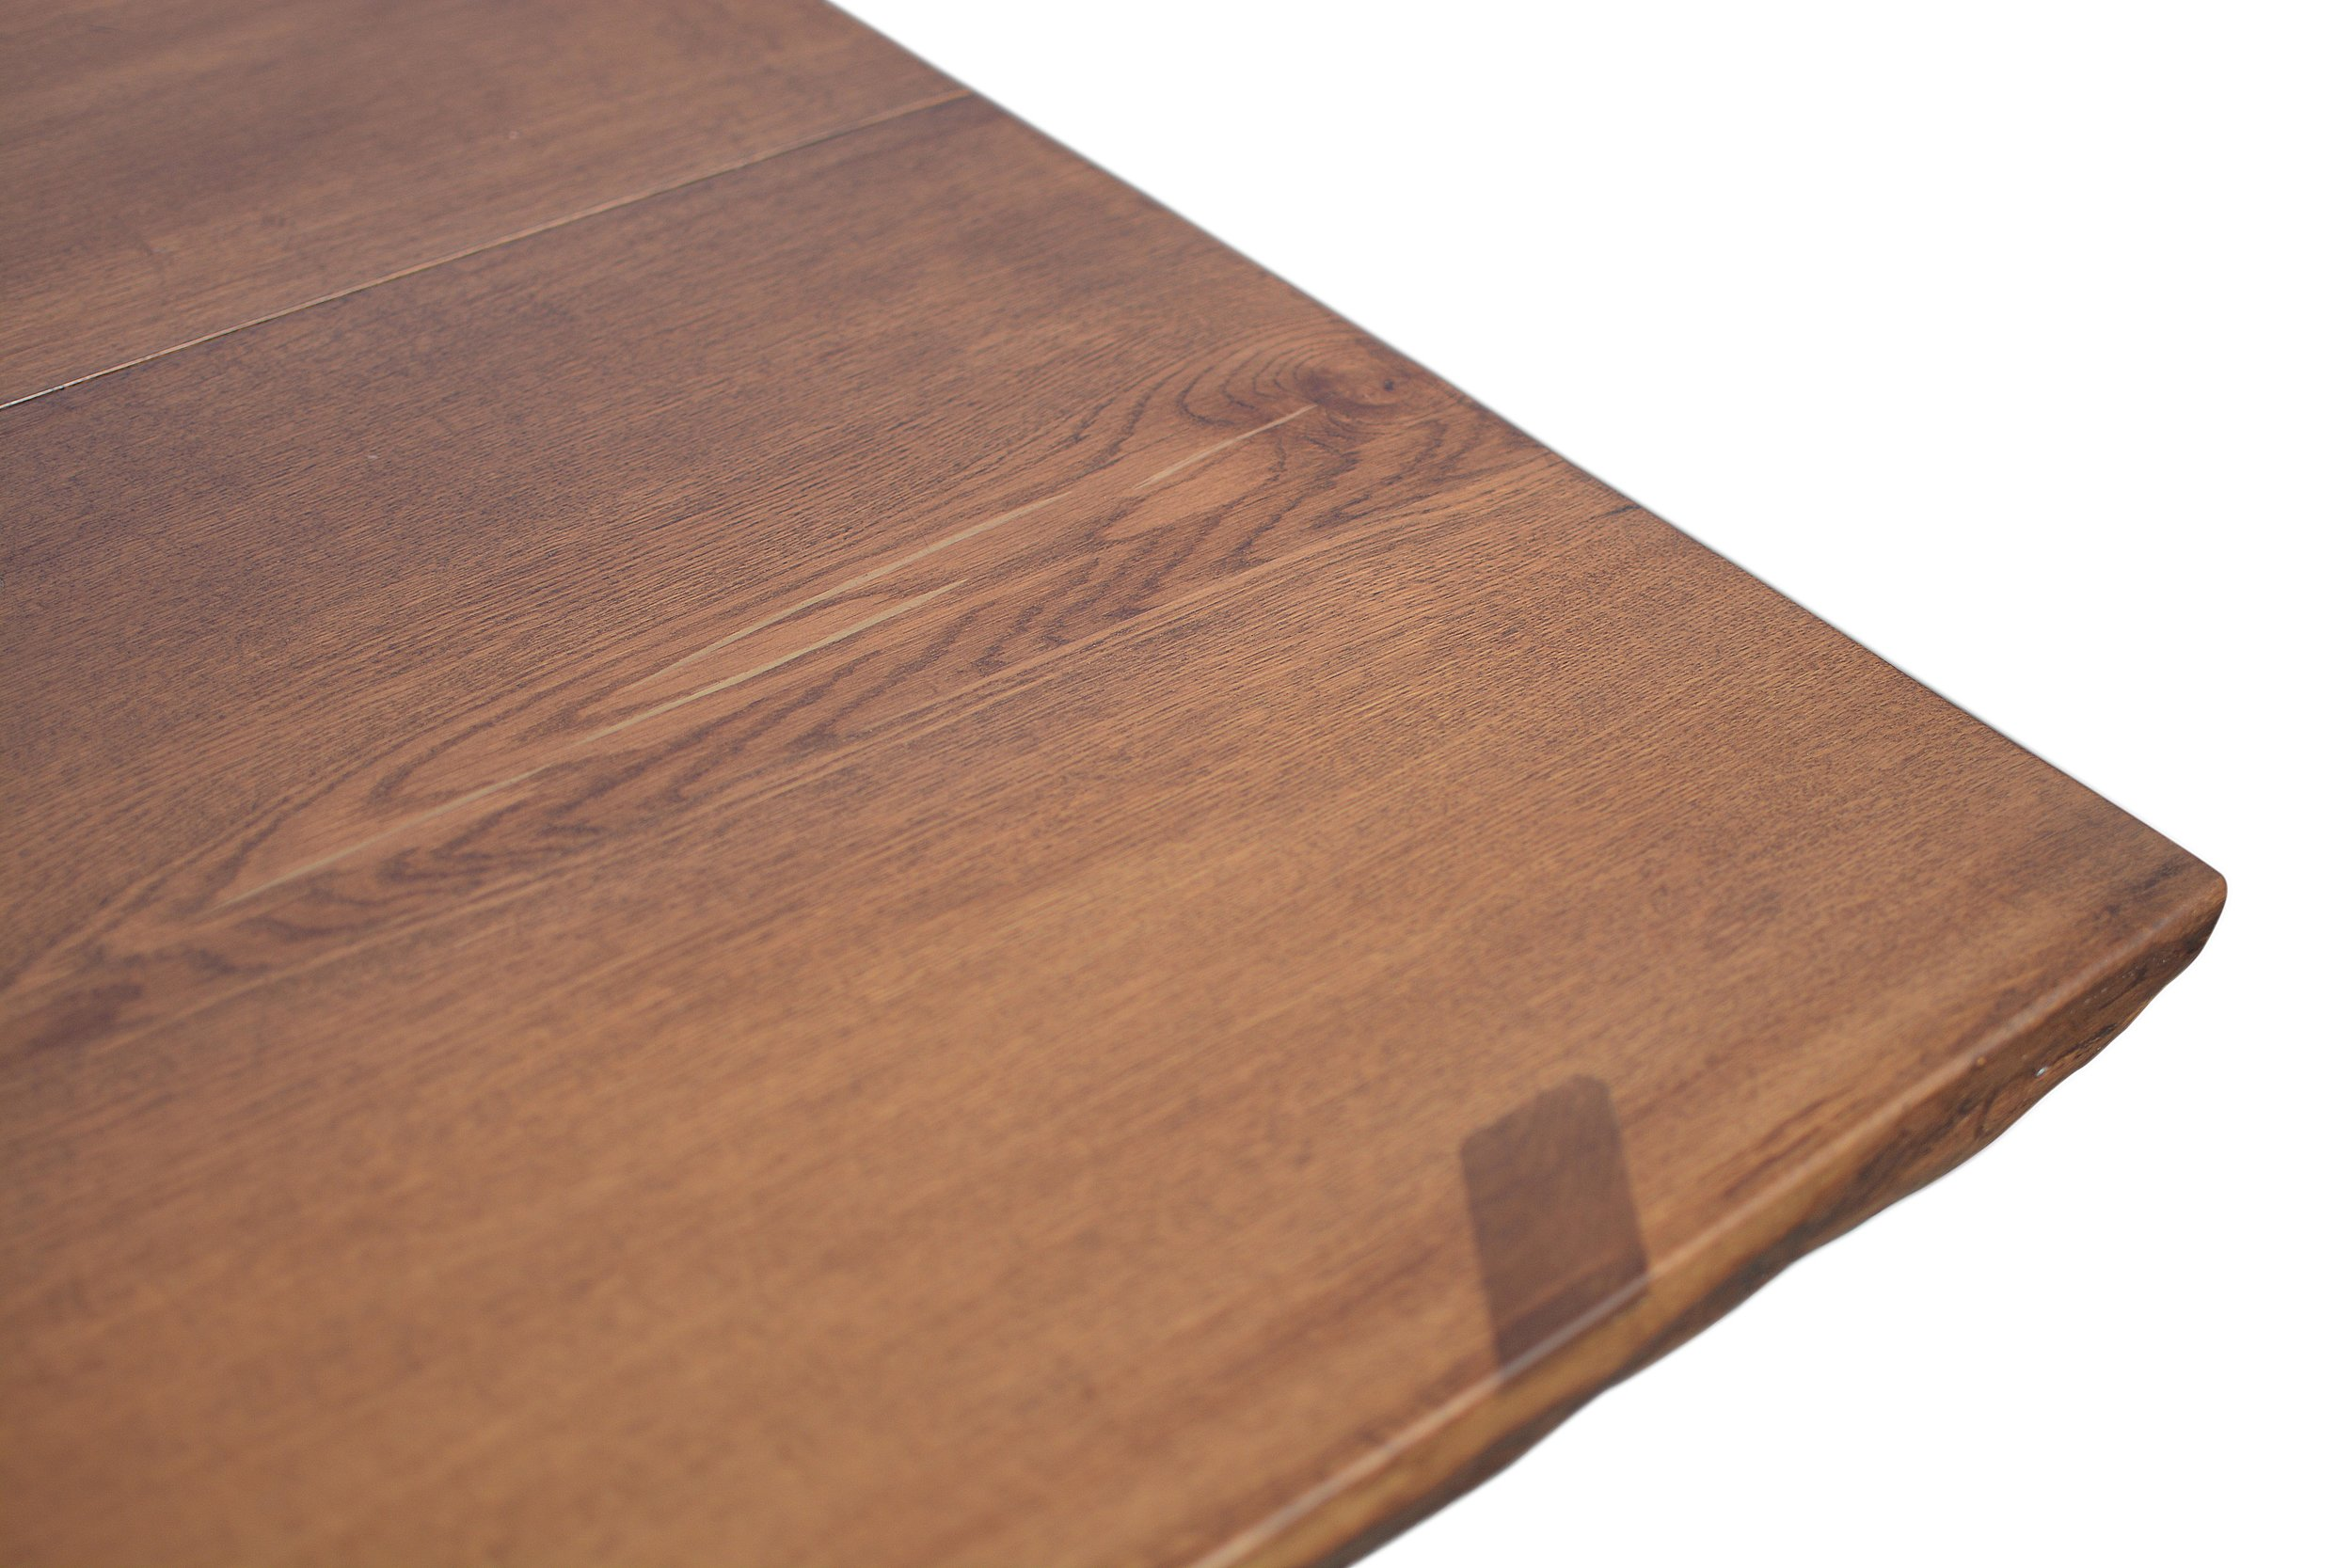 Etz & Steel Bond Live Edge Table Close Up 1.JPG